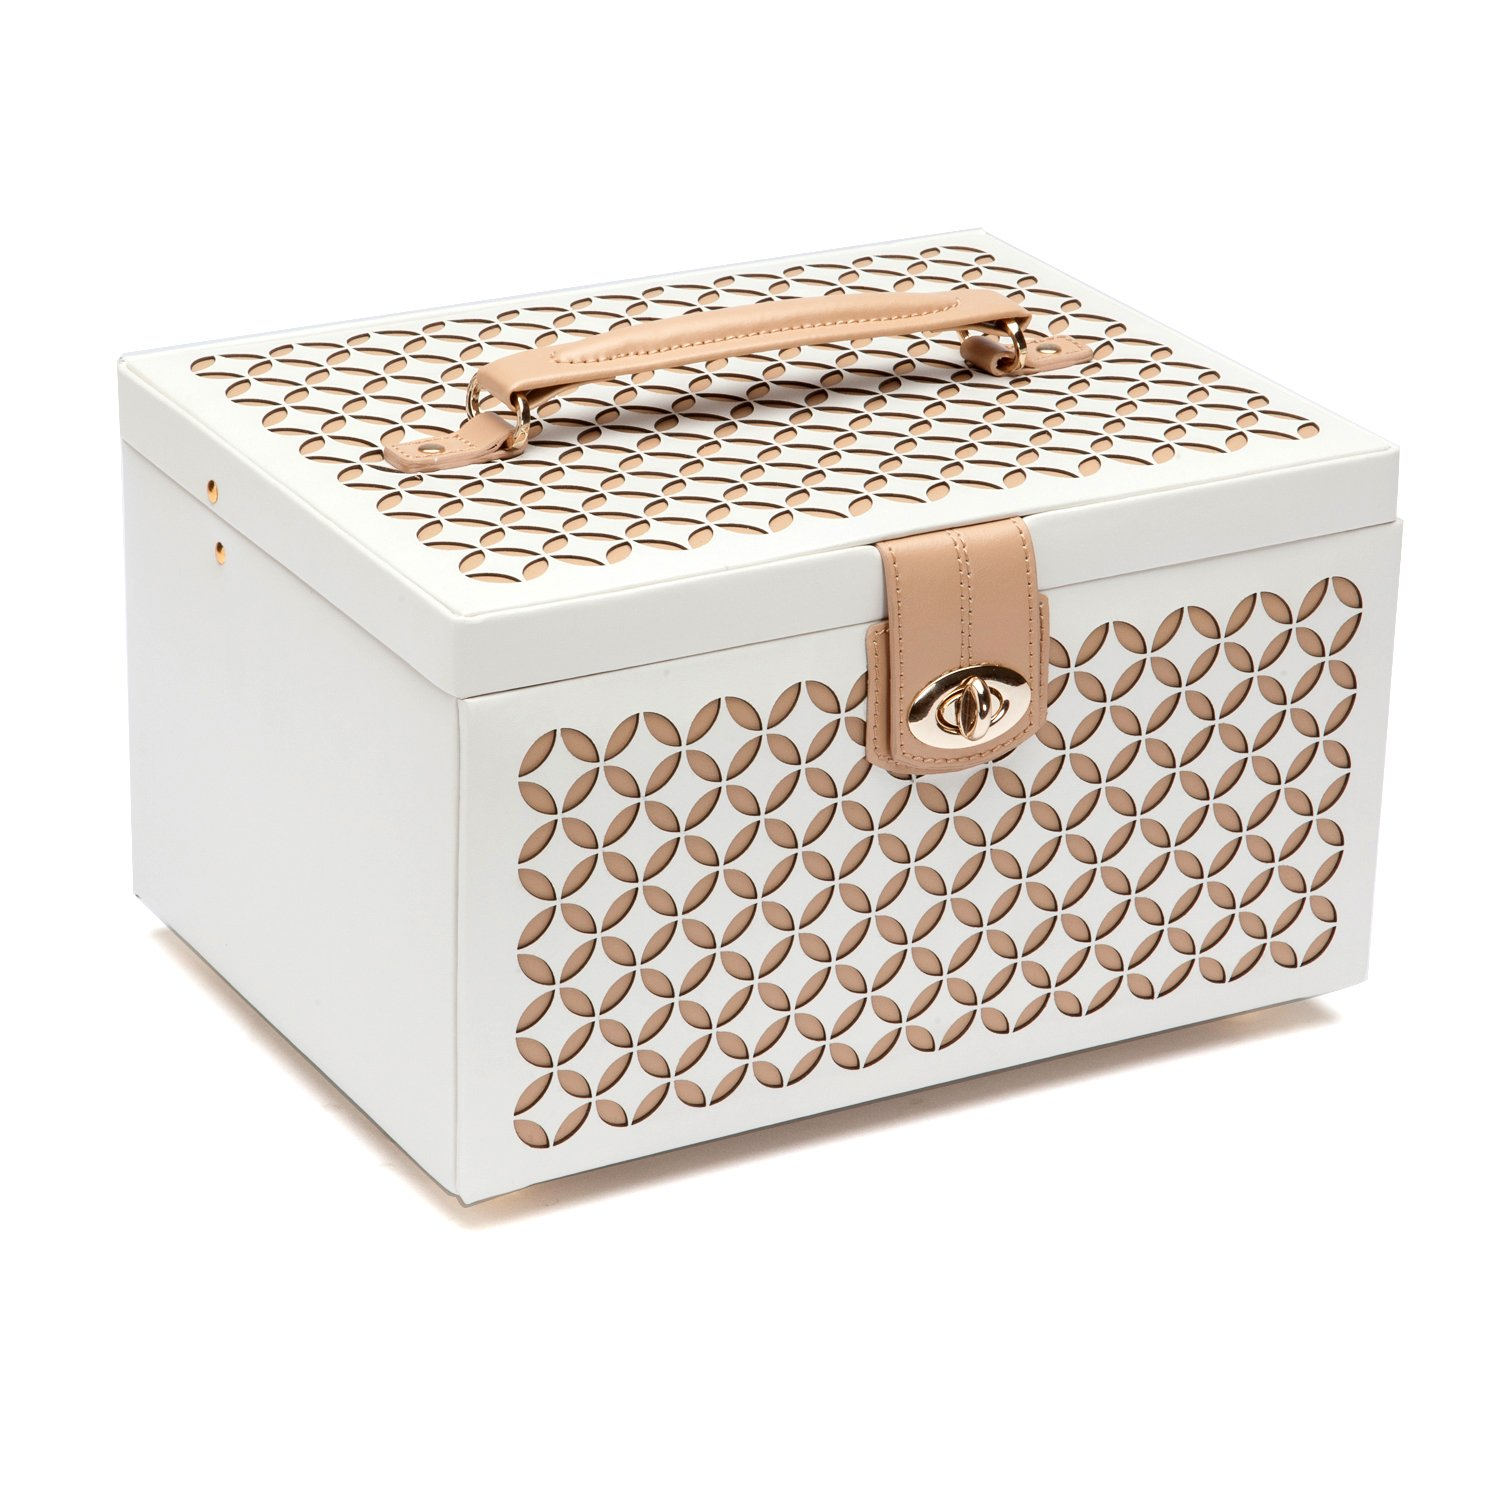 WOLF 301053 Chloe Medium Jewelry Box, Cream by WOLF